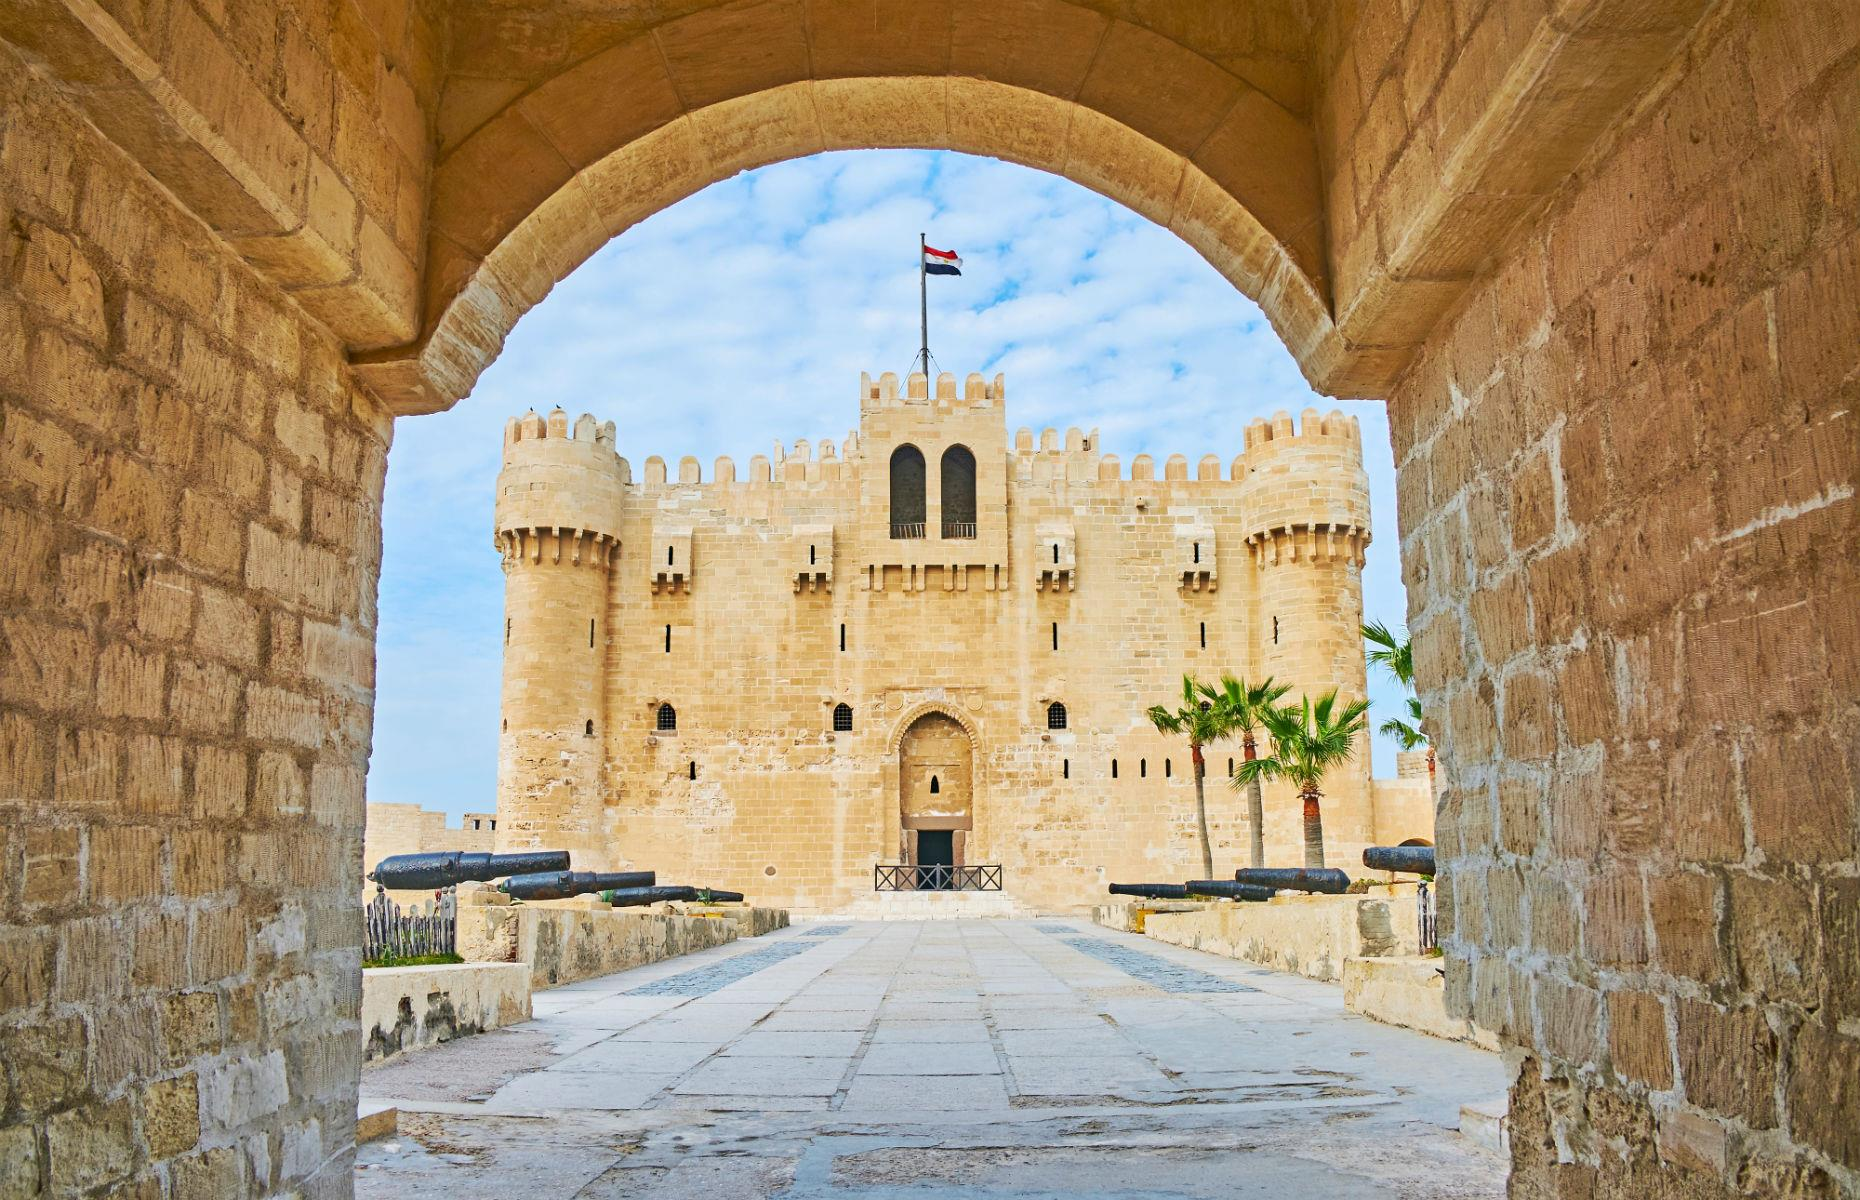 Slide 54 of 61: Built in the 15th century, this citadel was designed to protect the kingdom of Alexandria in the country's north. It is believed to have been erected on the same spot as the city's famous Lighthouse, one of the Seven Wonders of the Ancient World.